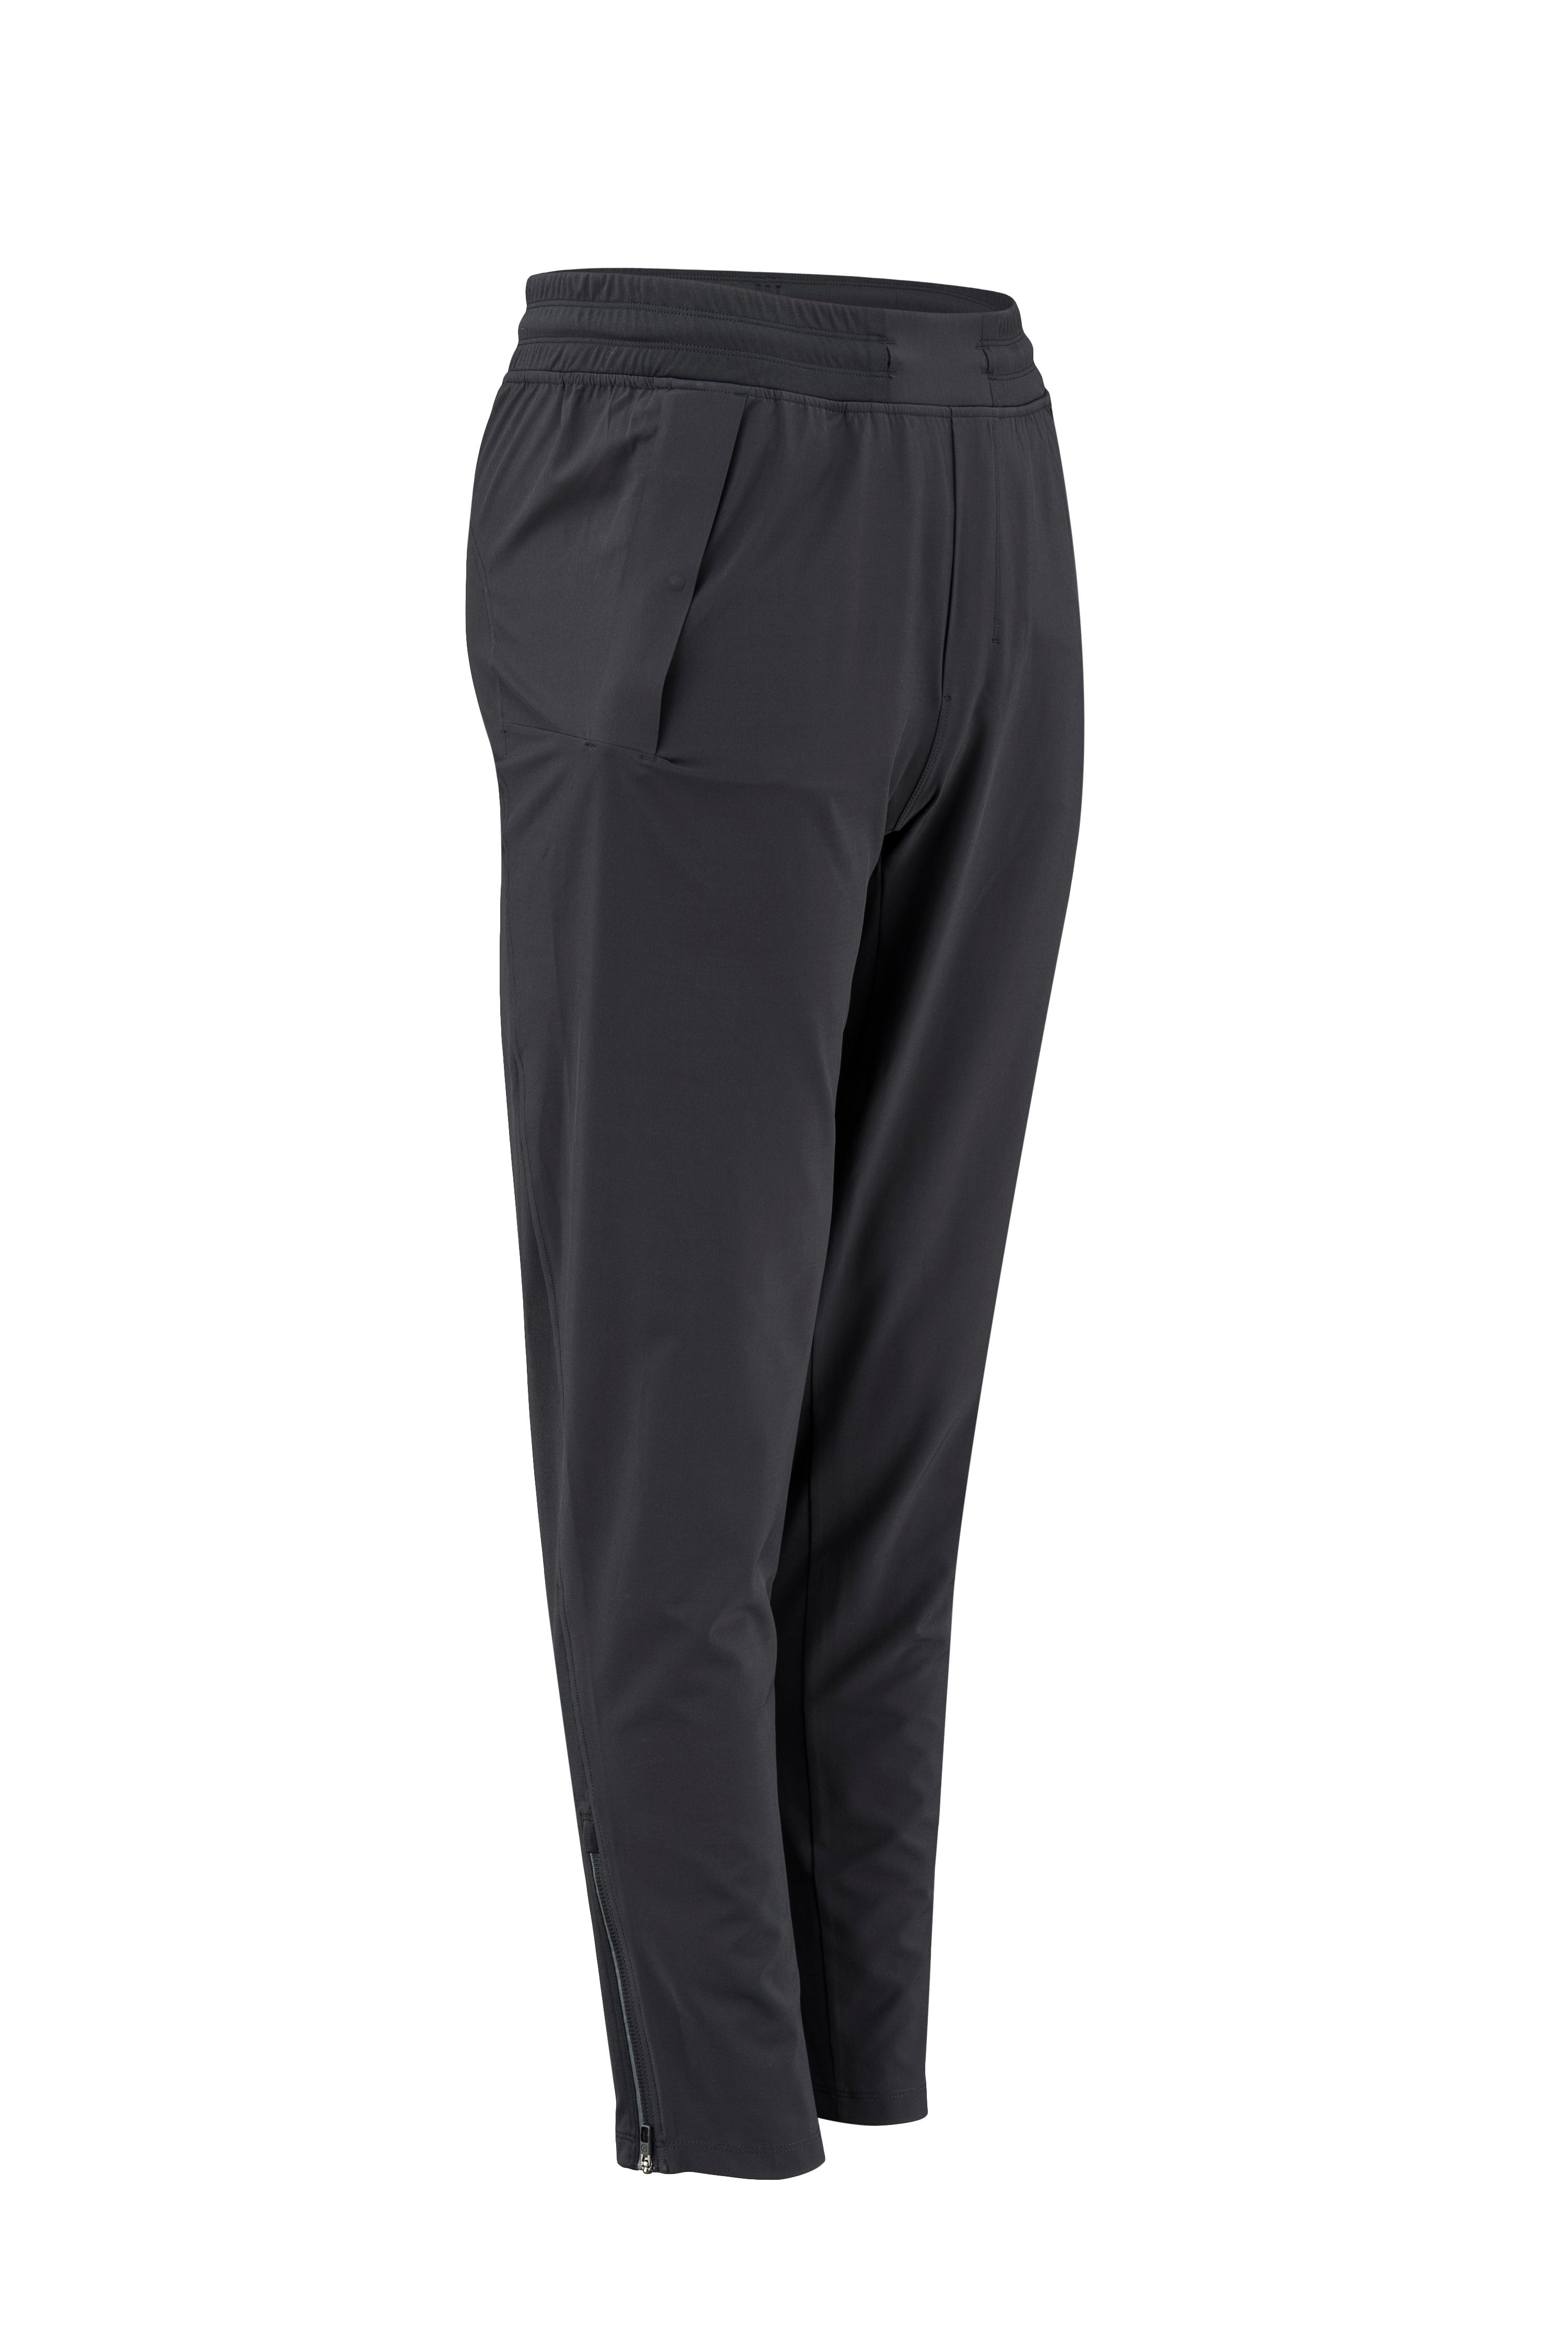 Lululemon Chill Motion Pant // Price: $118 // (Image: Lululemon){&amp;nbsp;}<p></p>